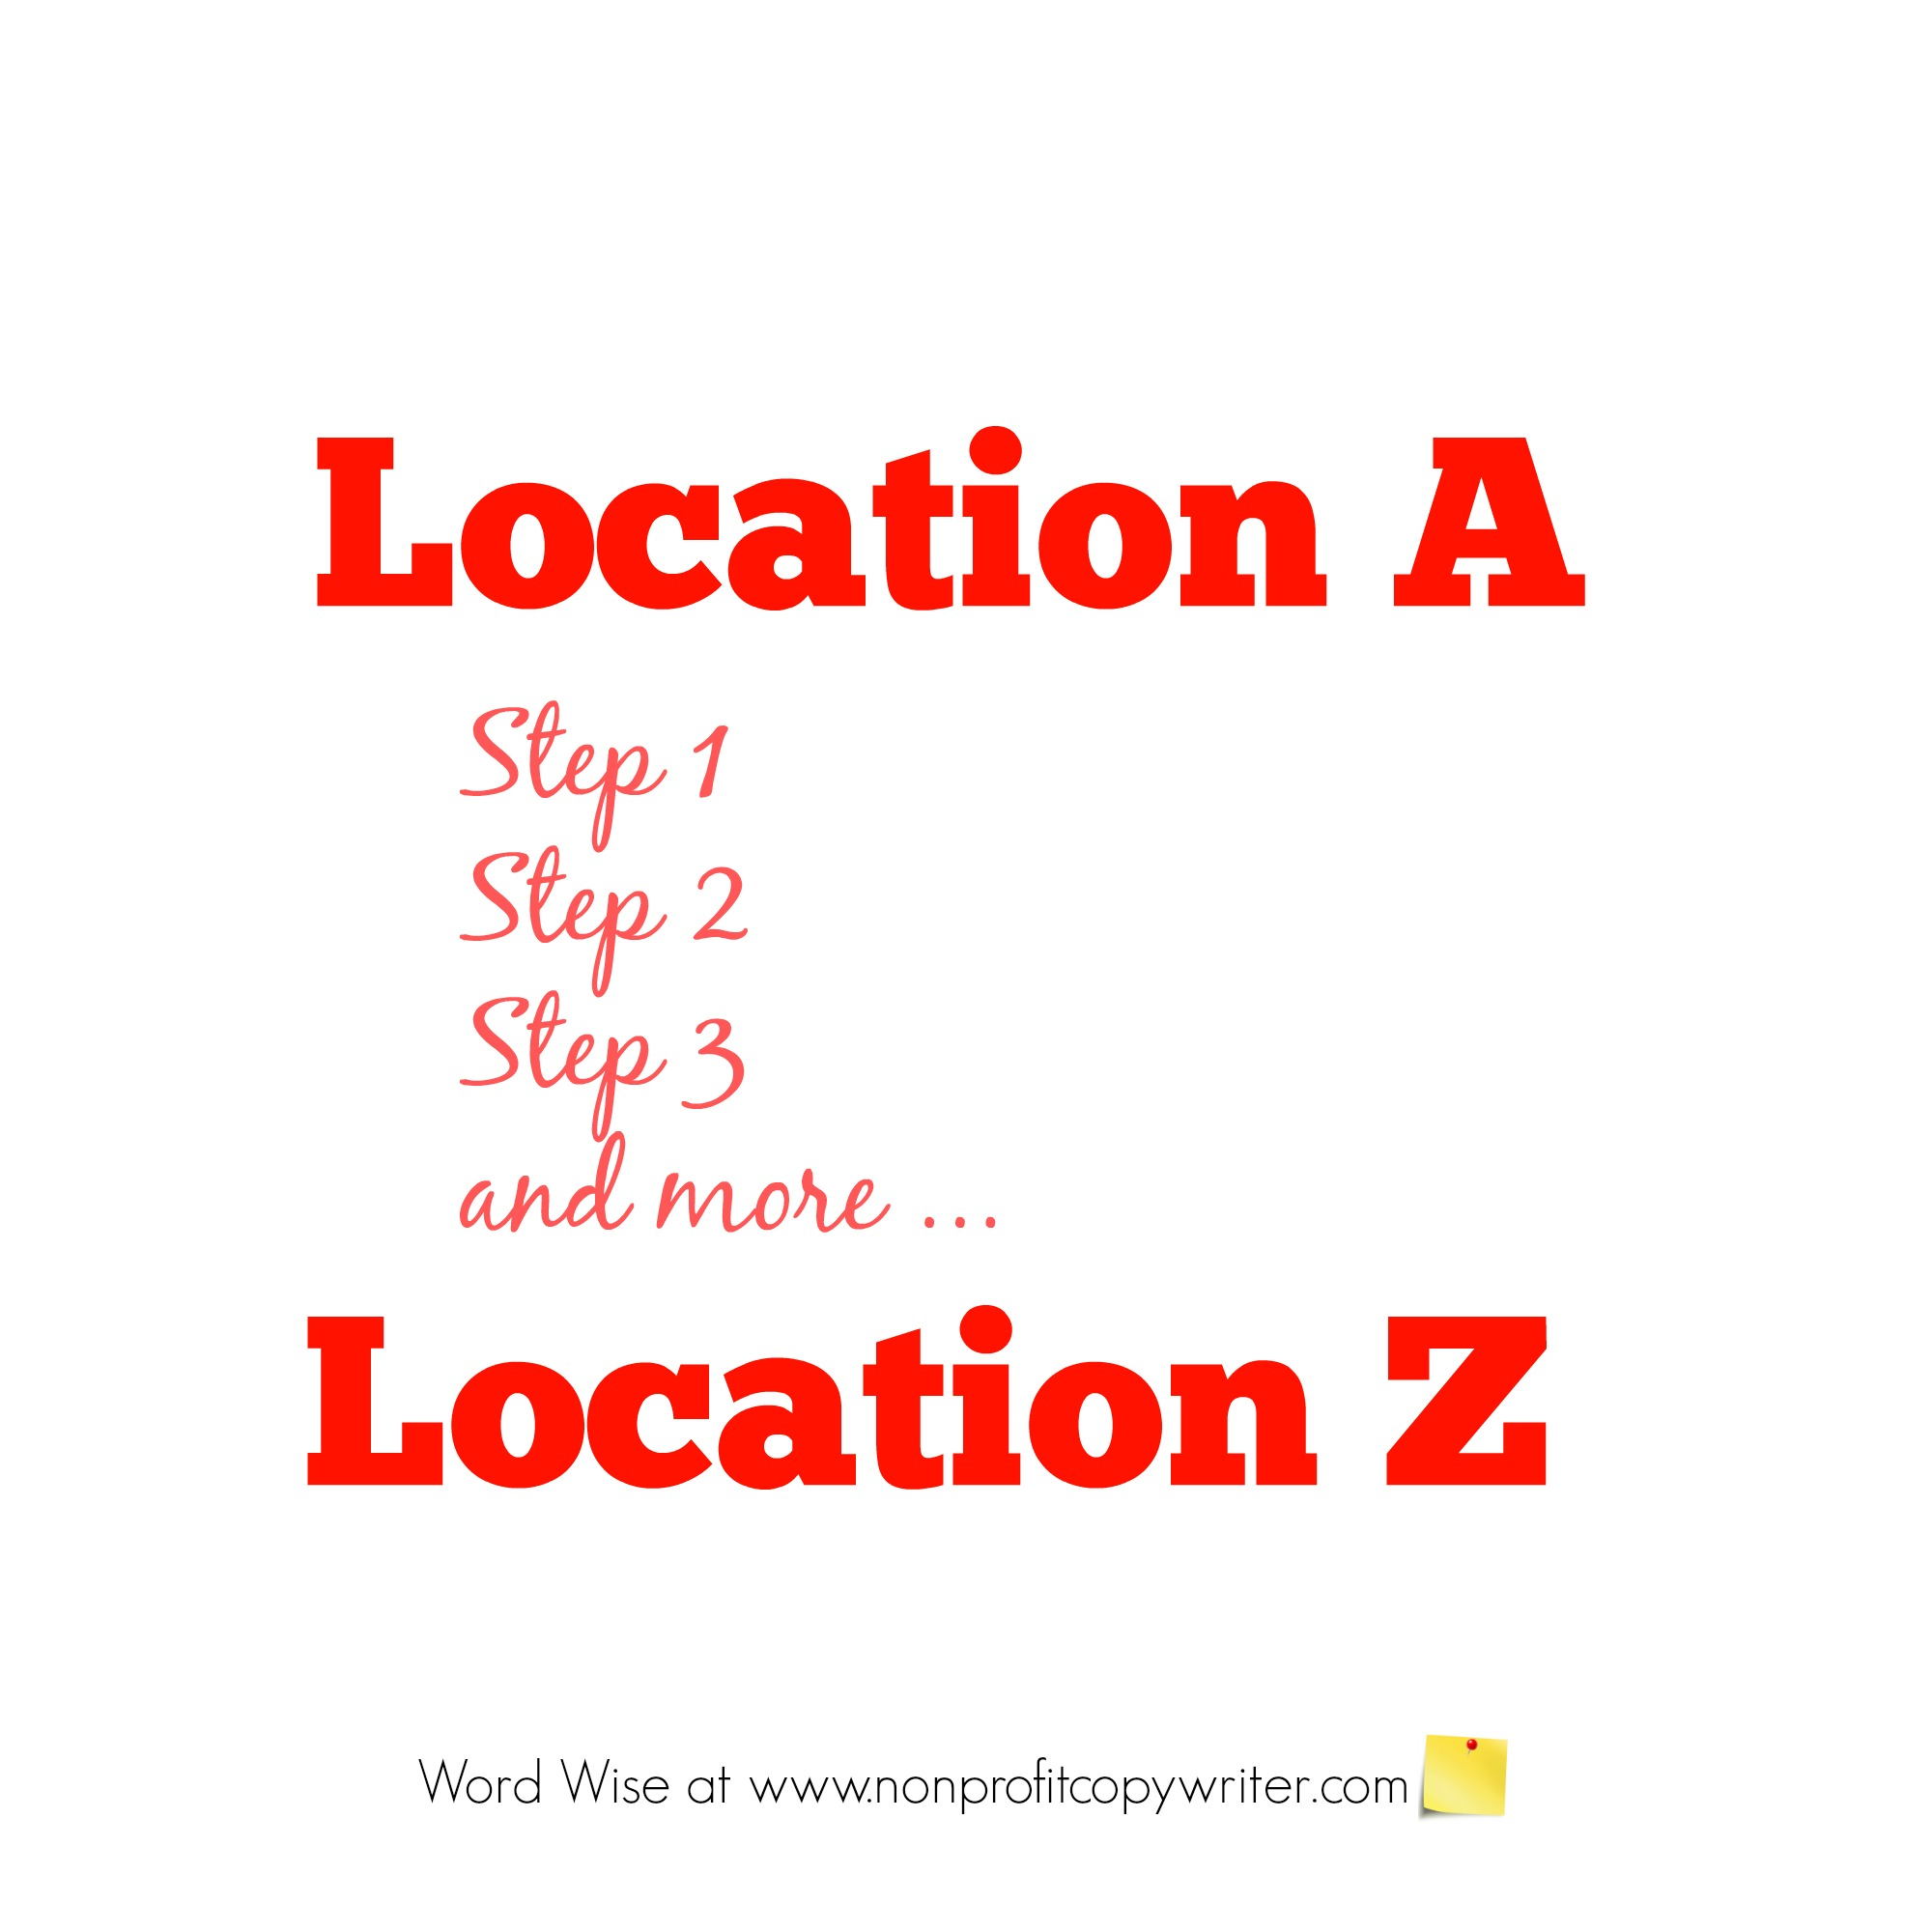 Creating an outline - lead your reader from Location A to Location Z. With Word Wise at Nonprofit Copywriter